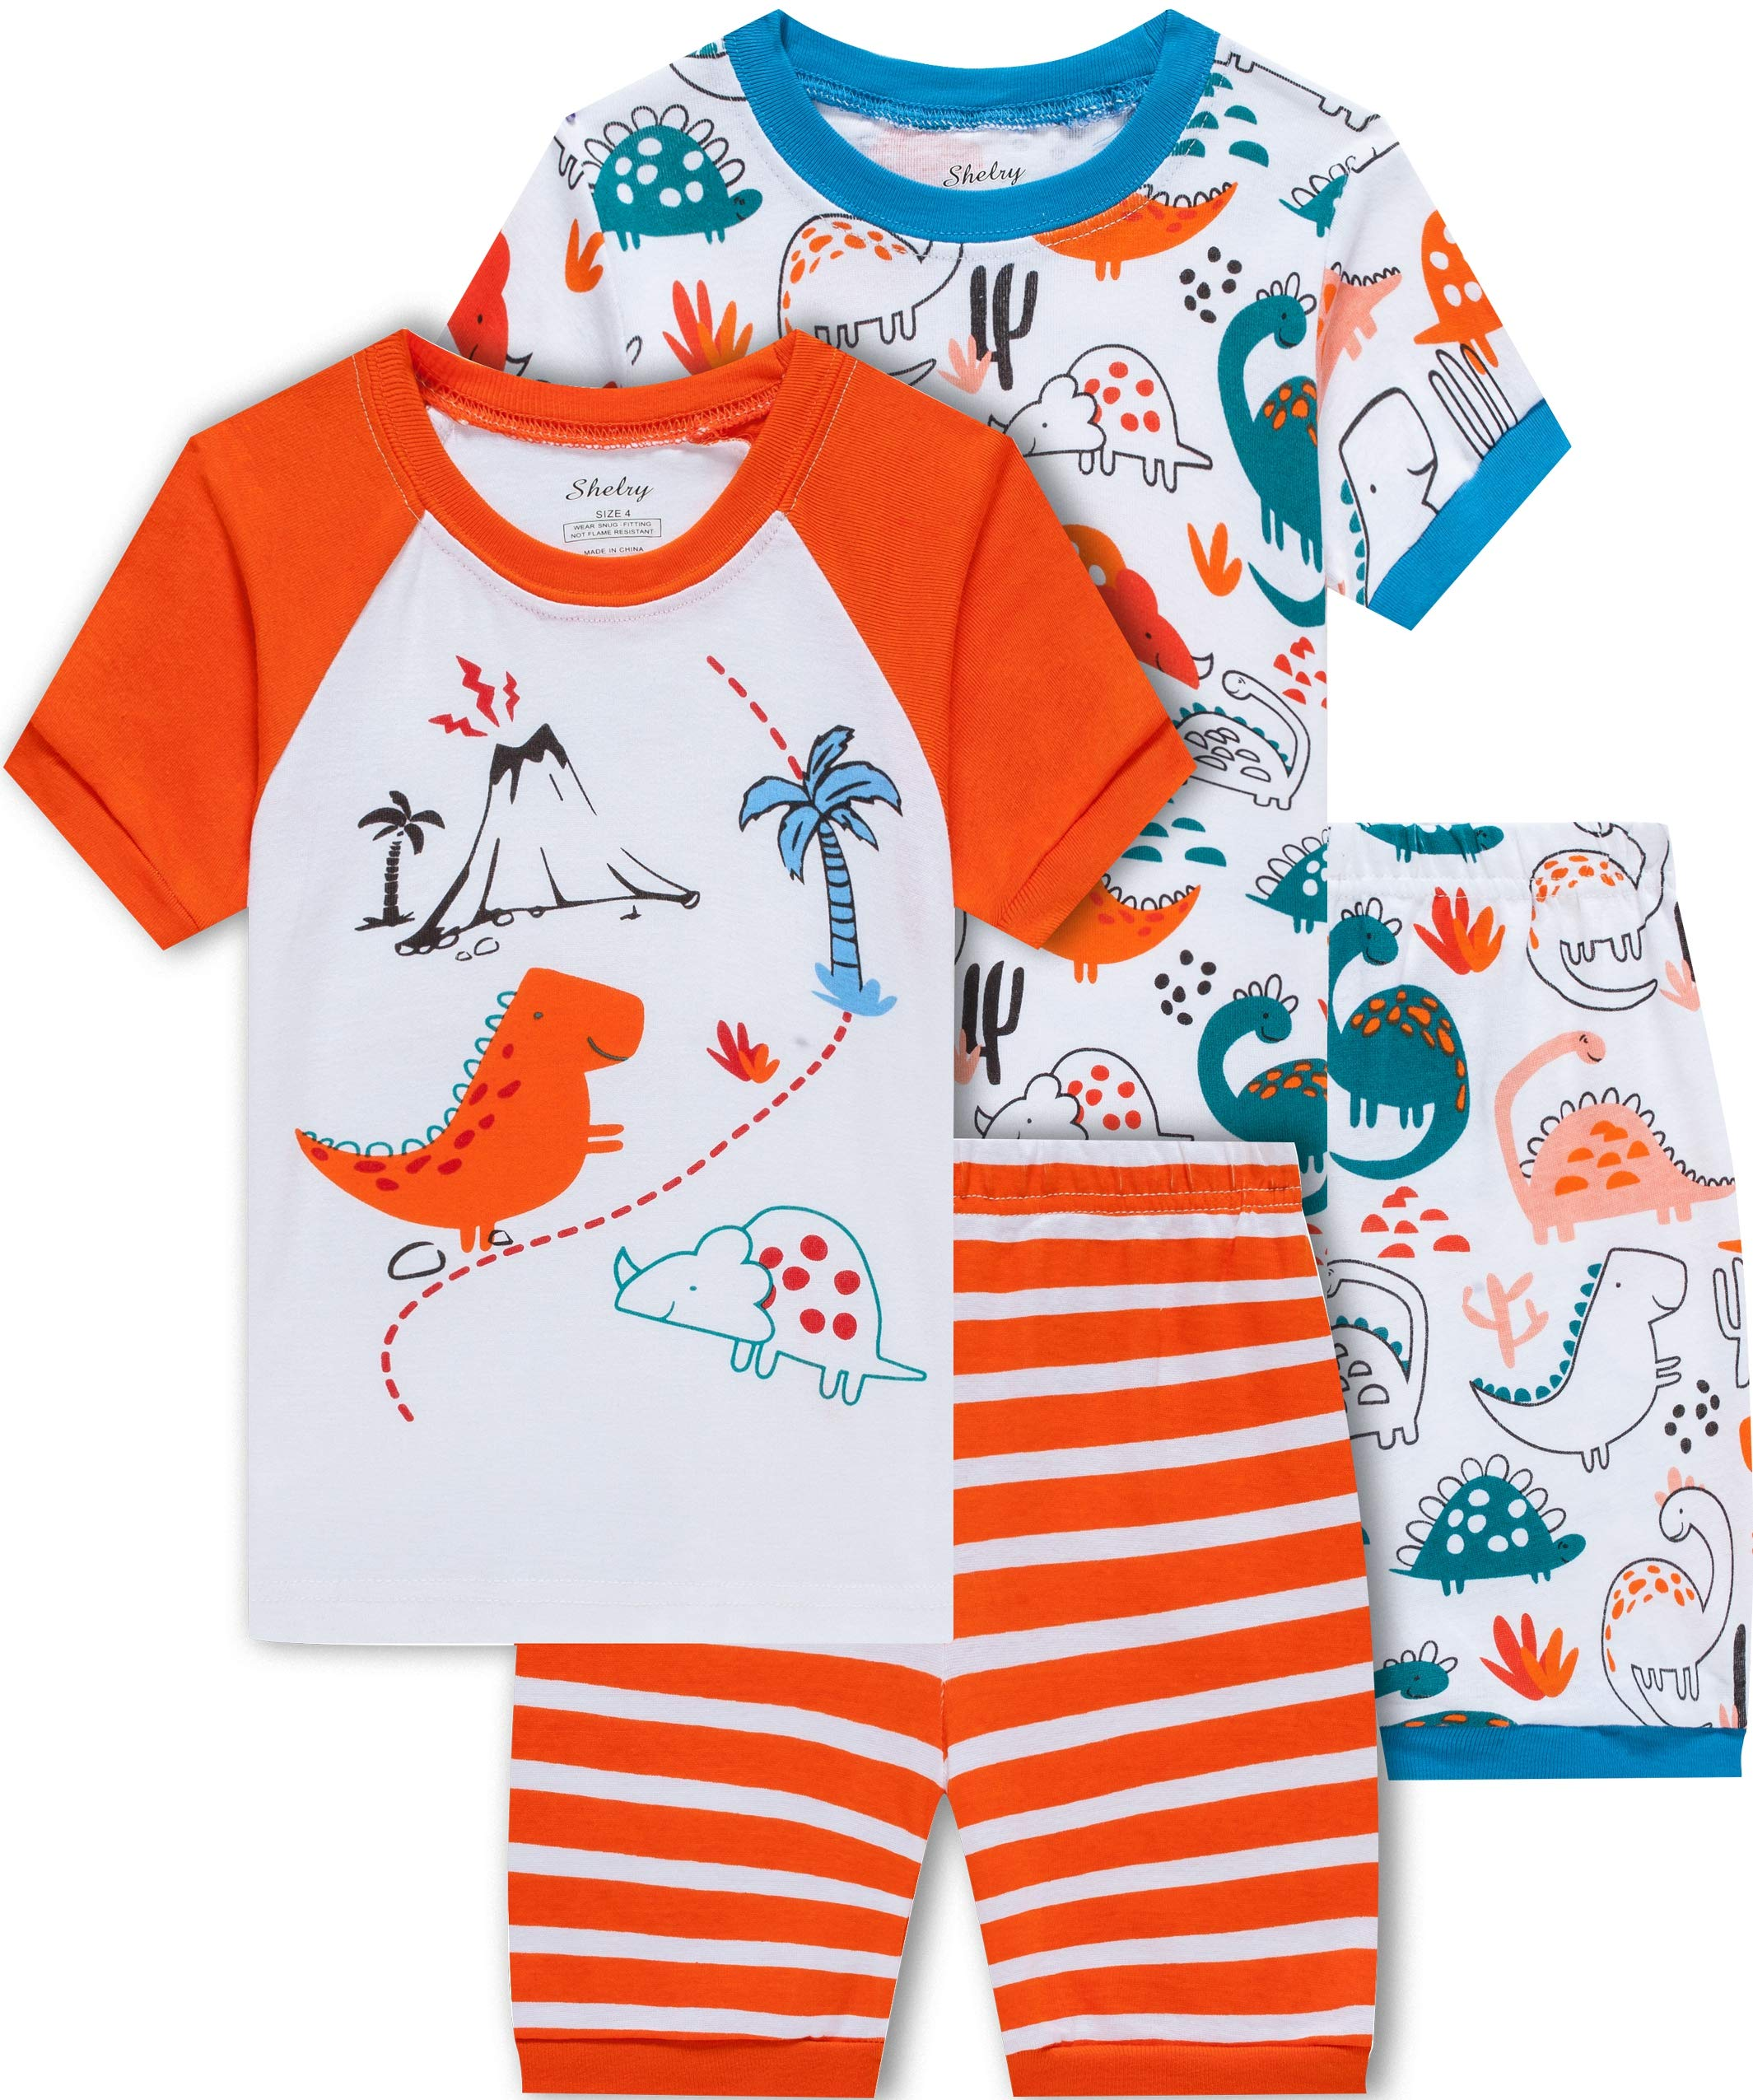 shelry Dinosaur Pajamas for Boys Summer Kids 4 Pieces Cotton Pjs Short Set Toddler Baby Sleepwear 3t